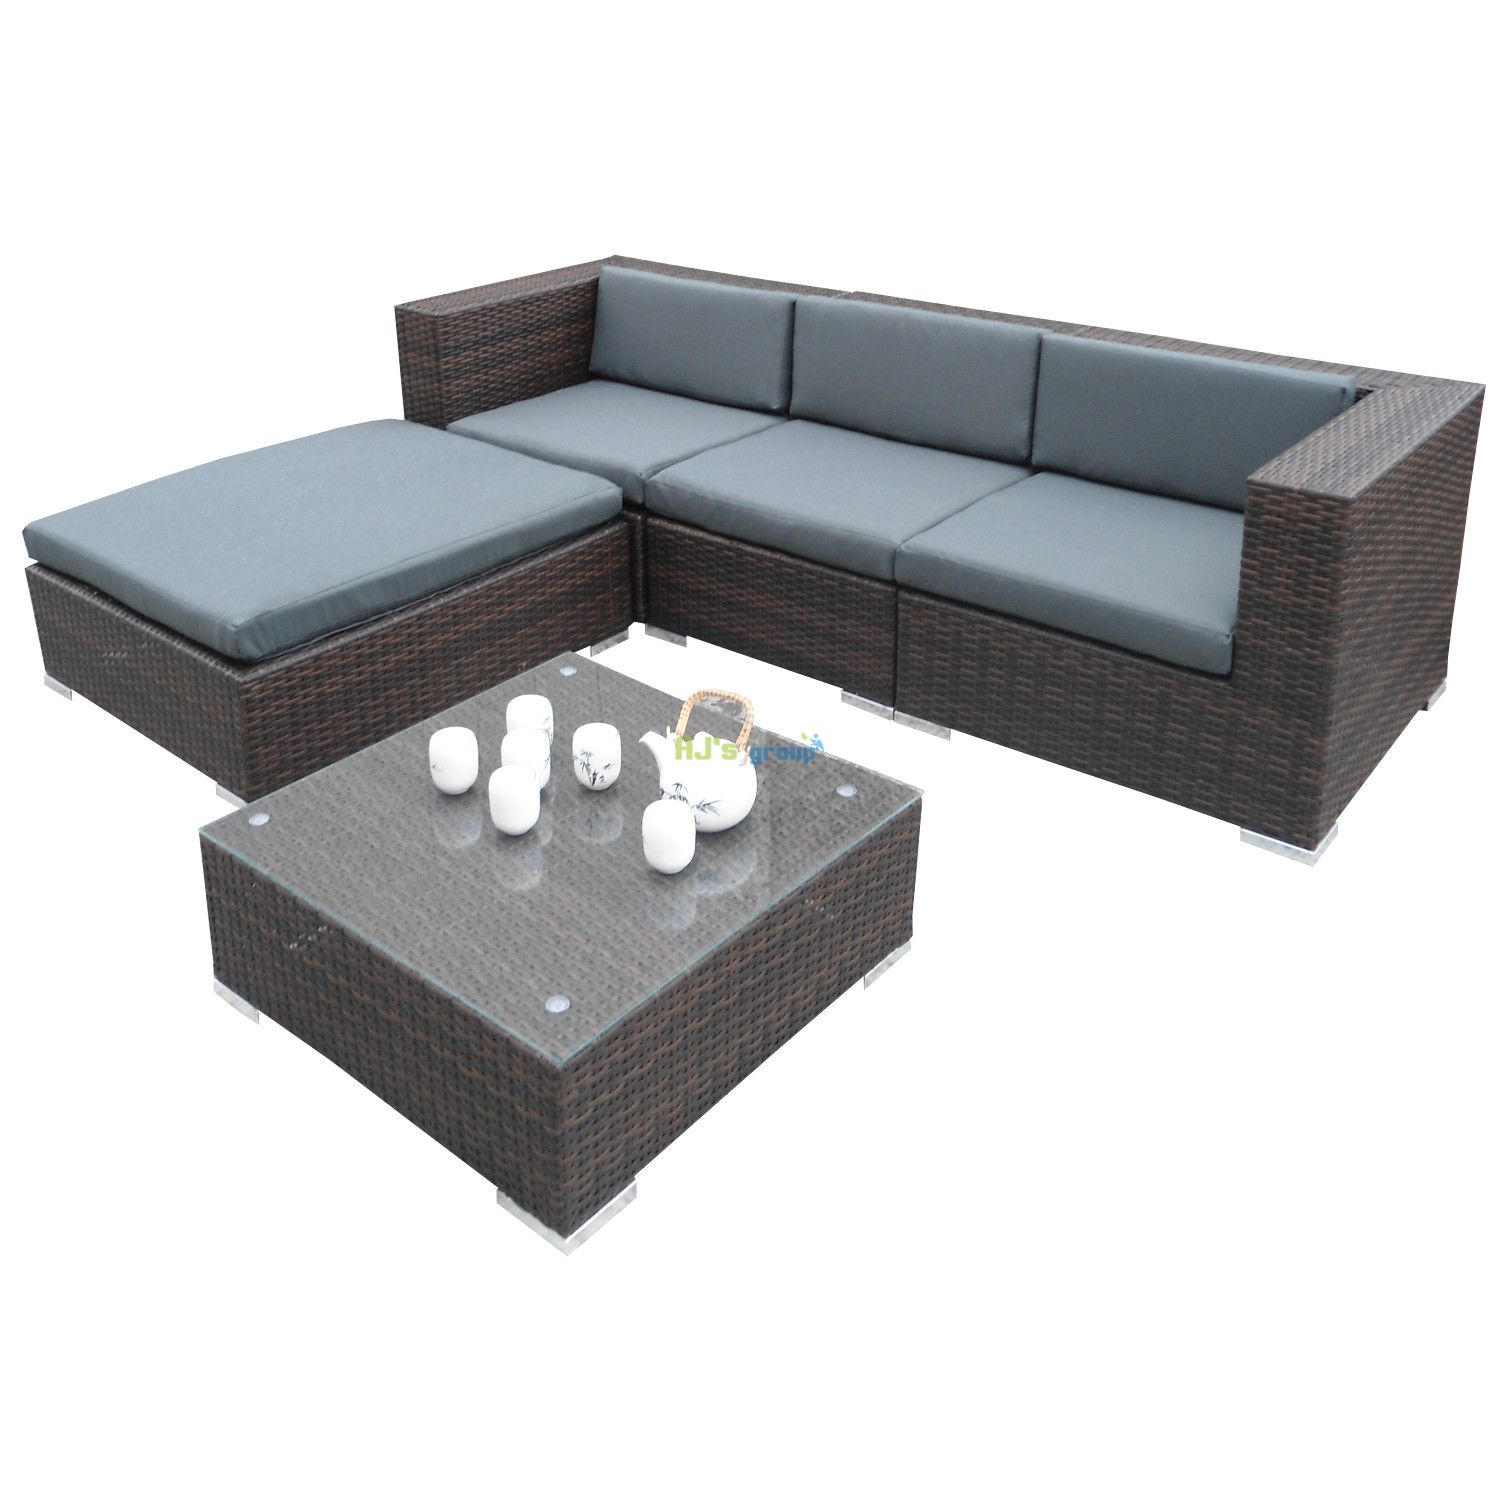 poly rattan gartenm bel houston alu garnitur lounge garten sitzg. Black Bedroom Furniture Sets. Home Design Ideas